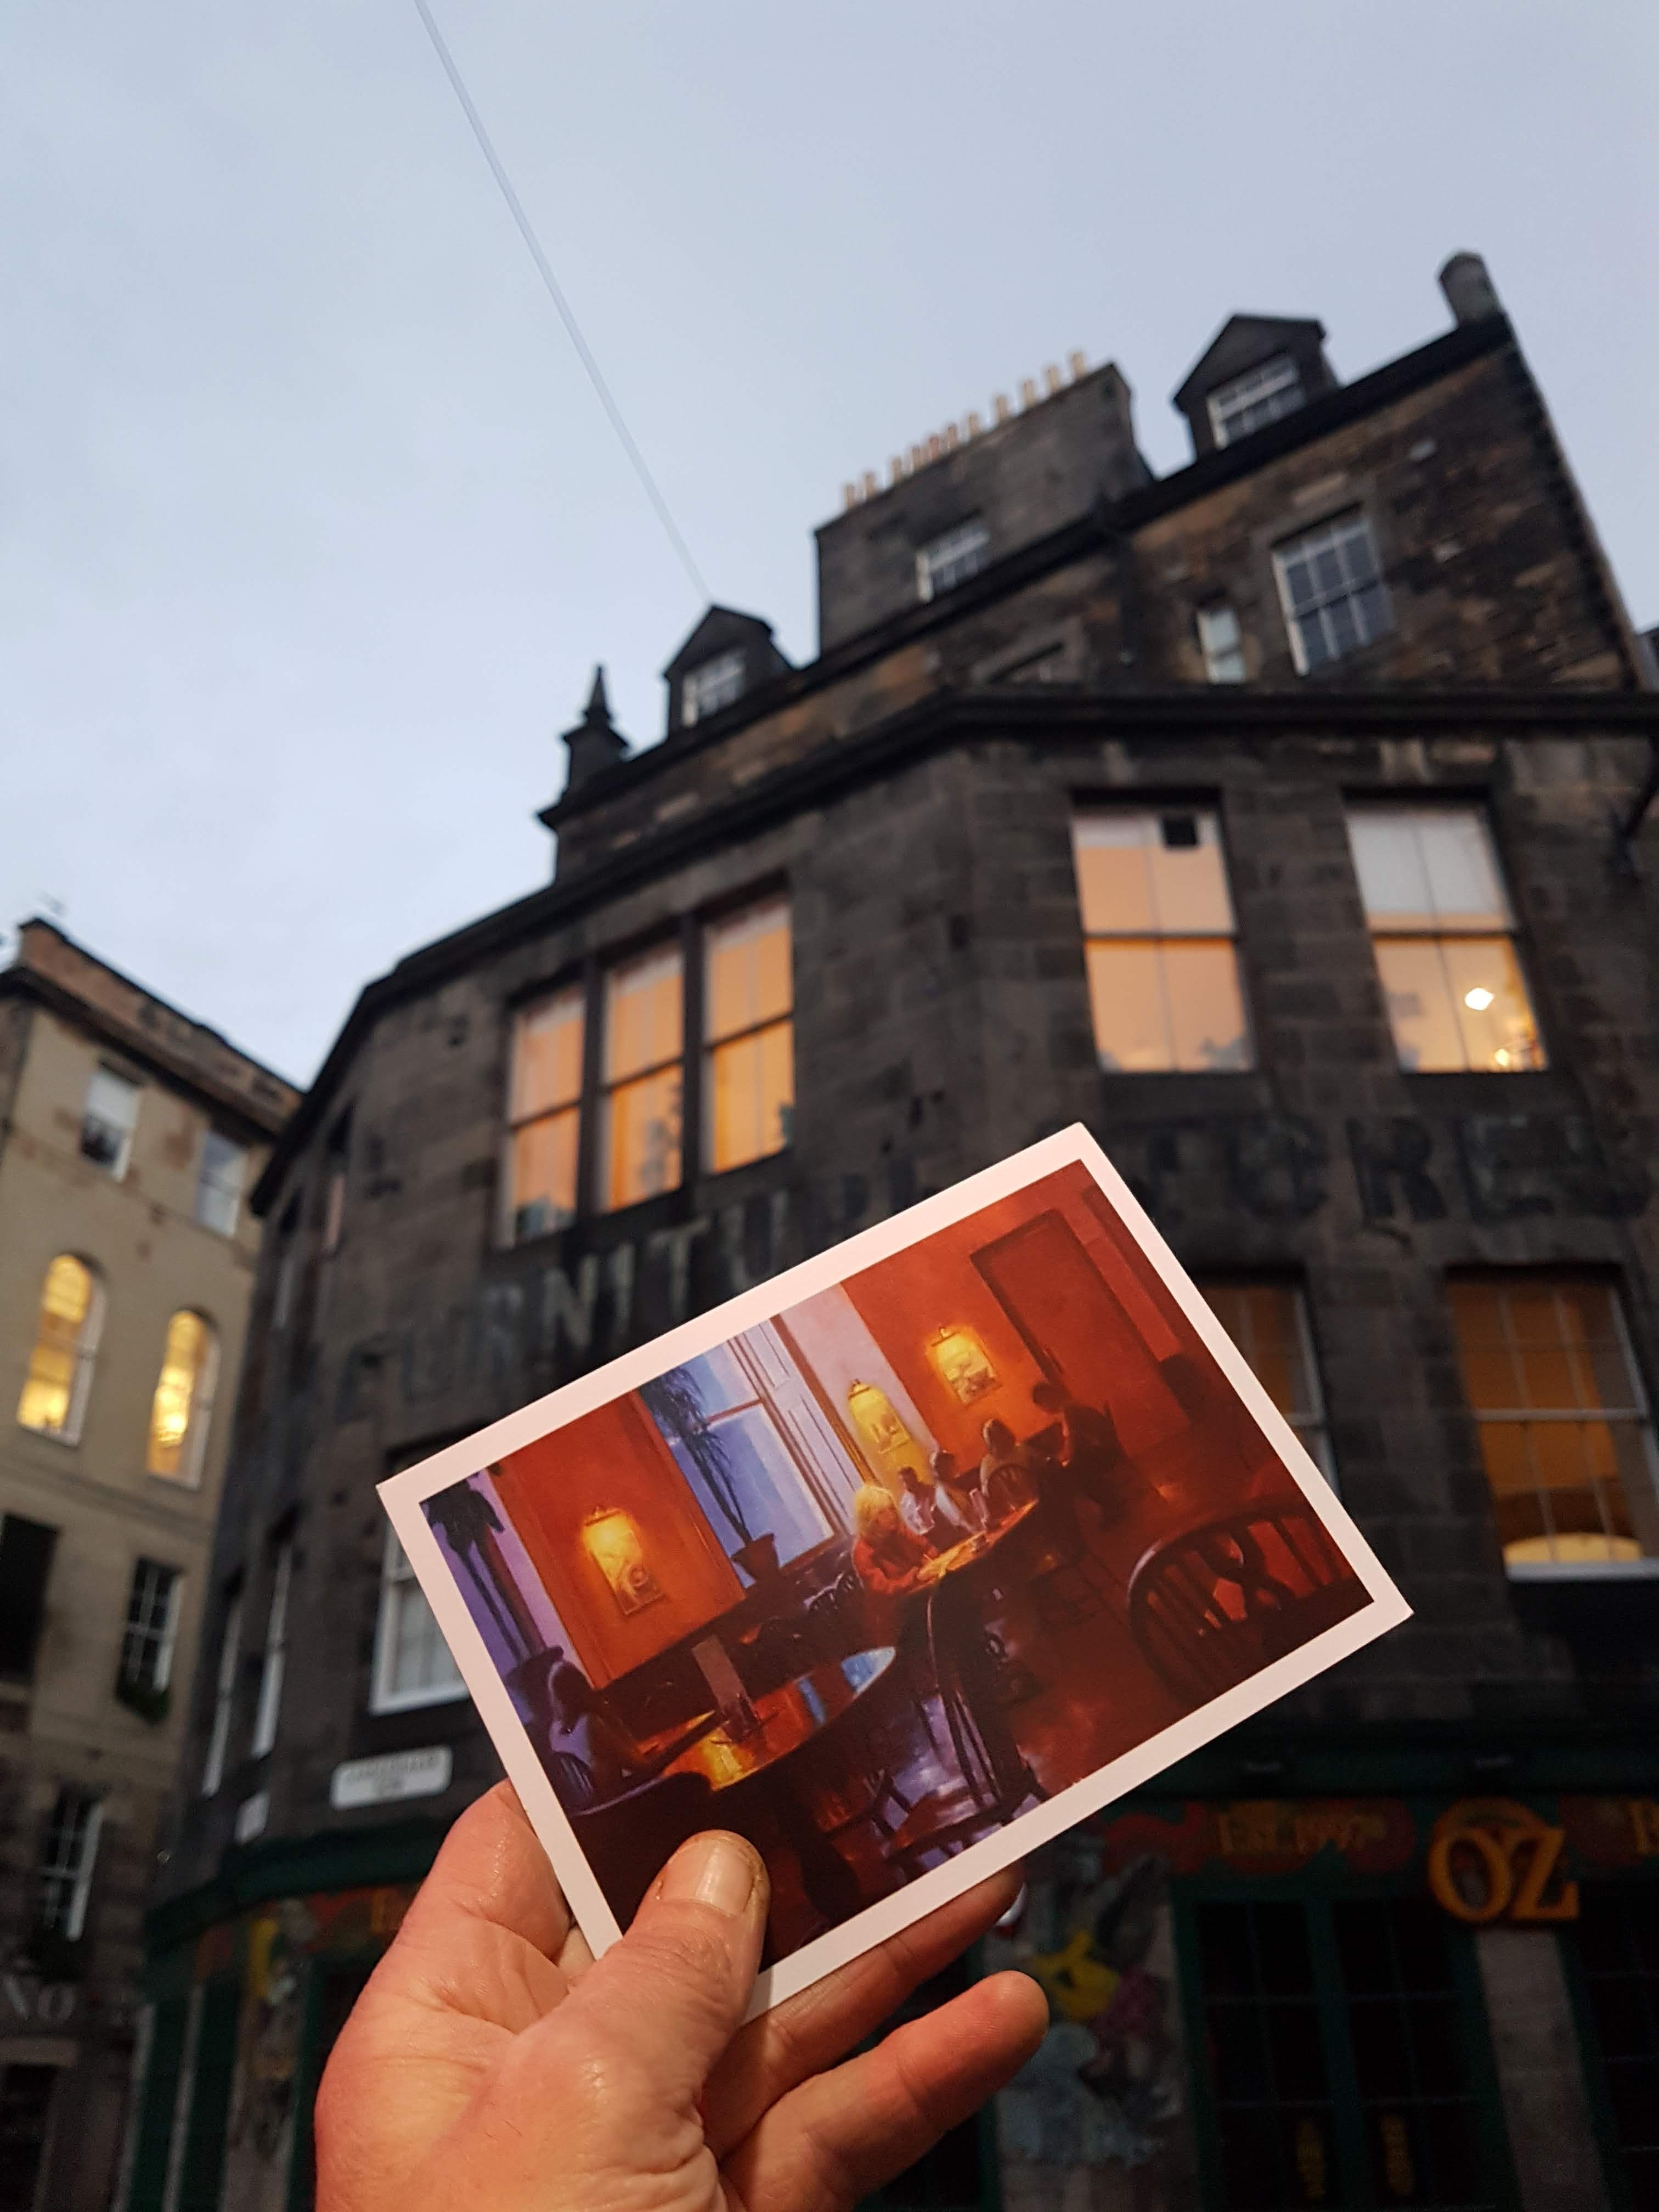 j k rowling's window overlooking candlemaker row. Postcard of elephant house